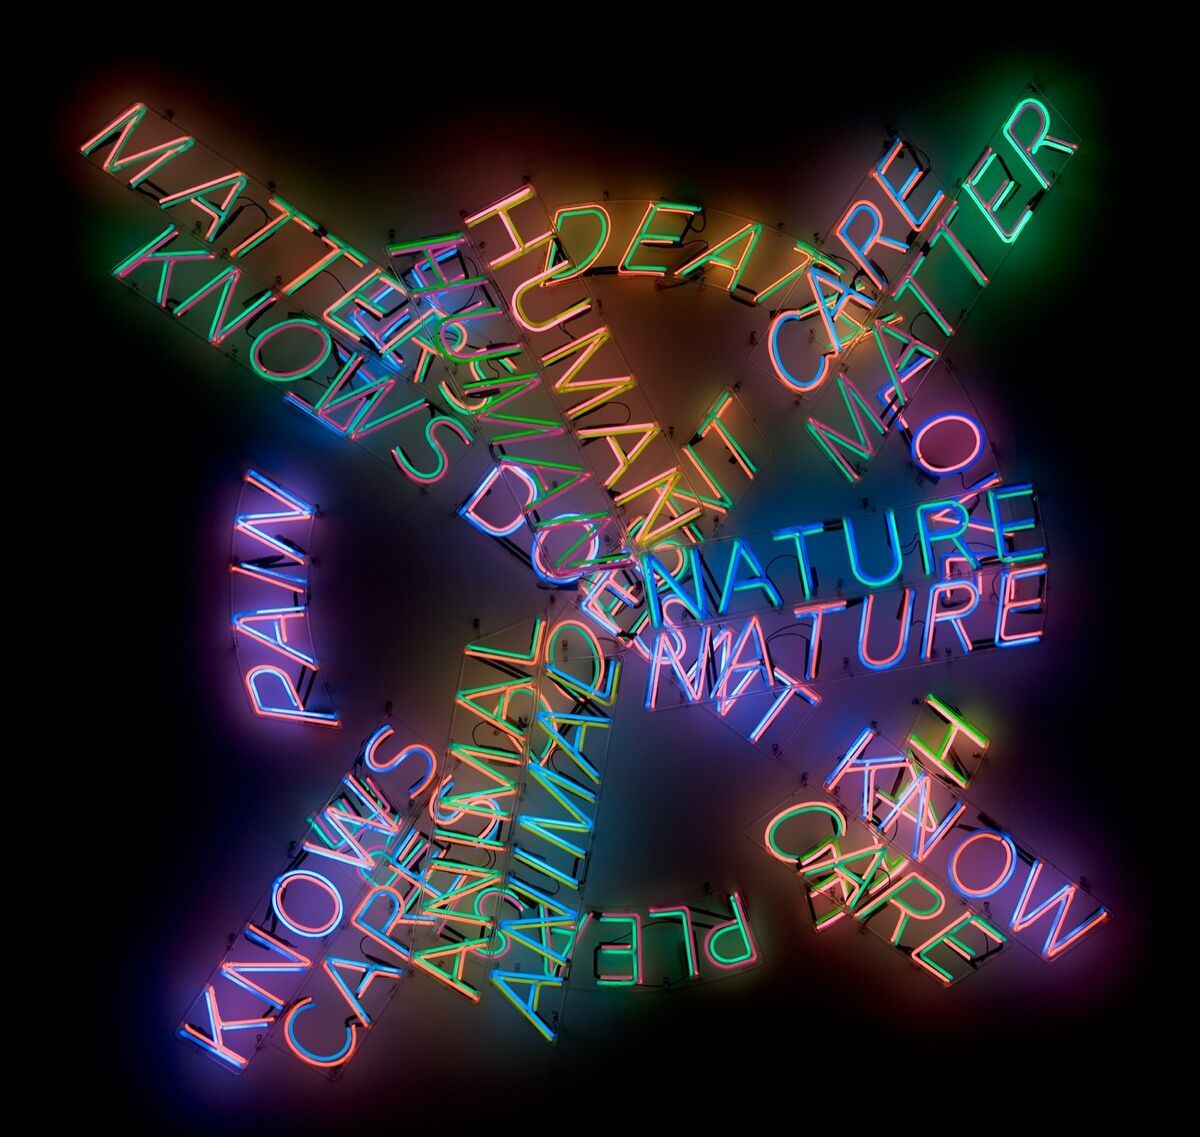 Bruce Nauman, Human Nature/Life Death/Knows Doesn't Know, 1983. © 2018 Bruce Nauman/Artists Rights Society (ARS), New York. Photo © Museum Associates/LACMA.